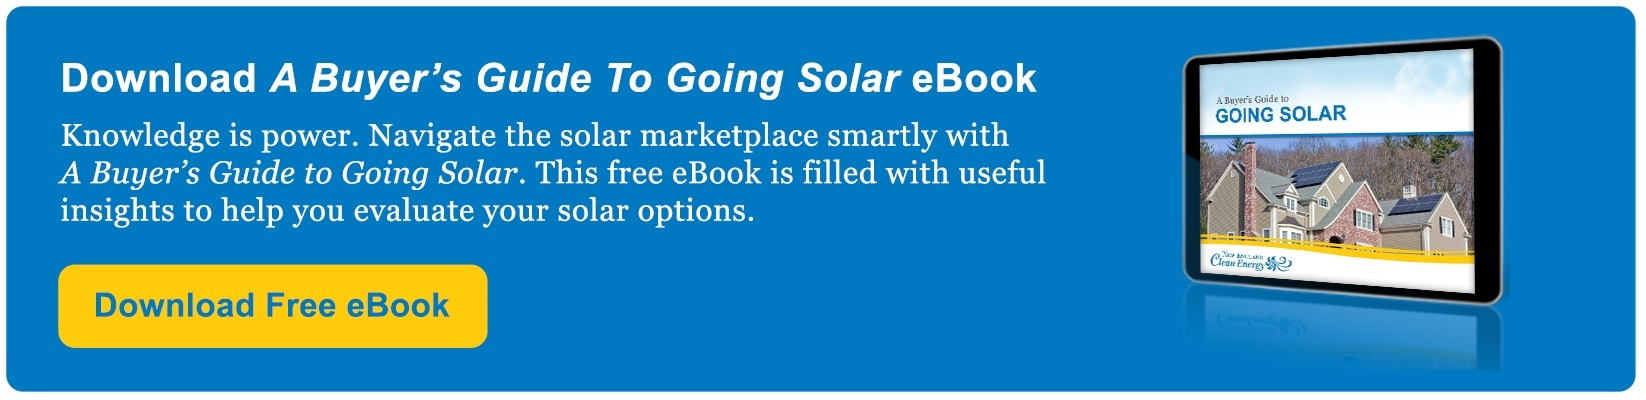 Download A Buyer's Guide to Going Solar eBook | Knowledge is power. Navigate the solar marketplace smartly with A Buyer's Guide to Going Solar. This free eBook is filled with useful insights to help you evaluate your solar options. Download Free eBook